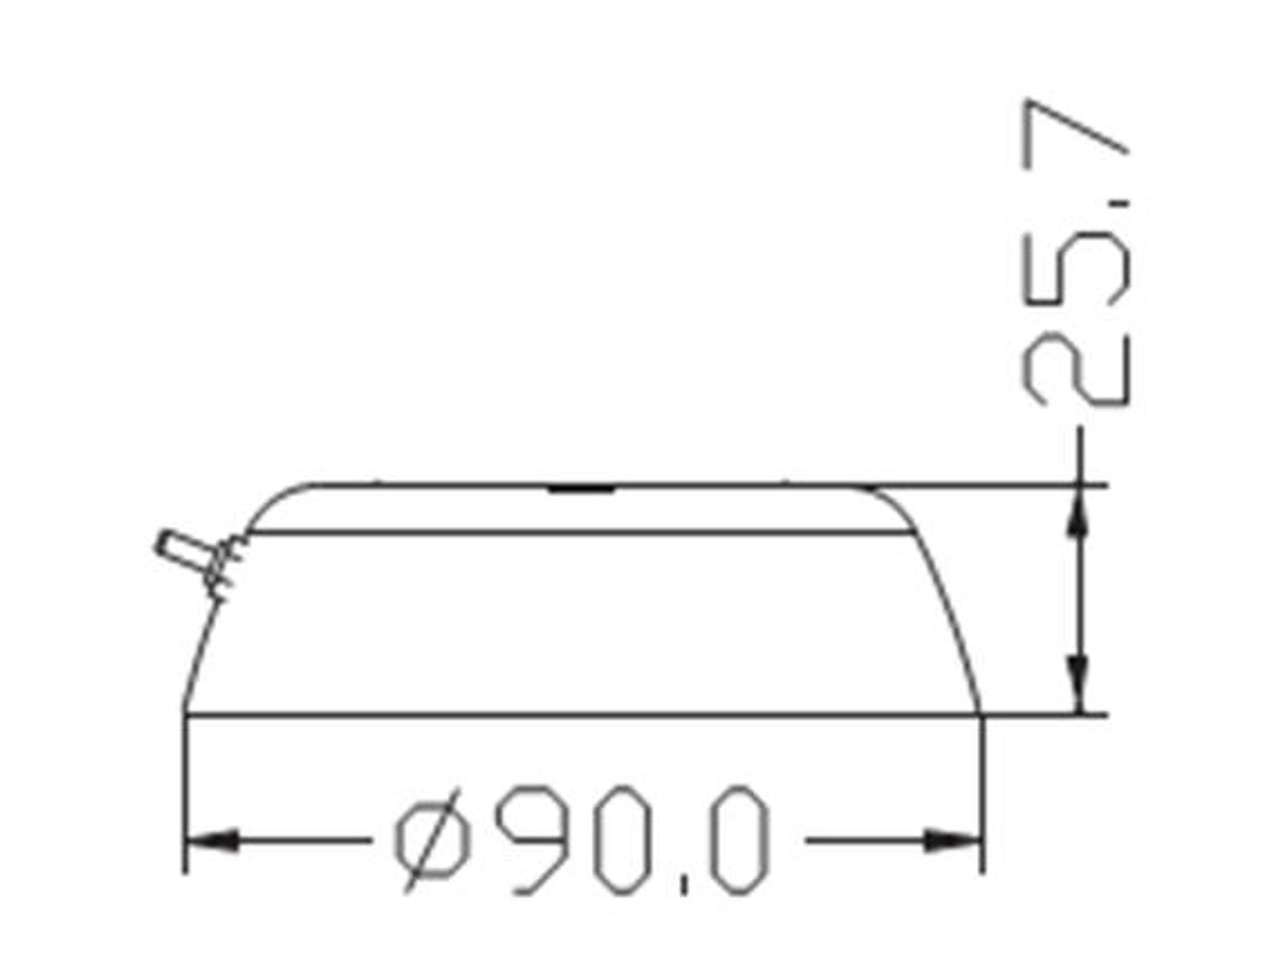 LED  Dome Light Dimensions